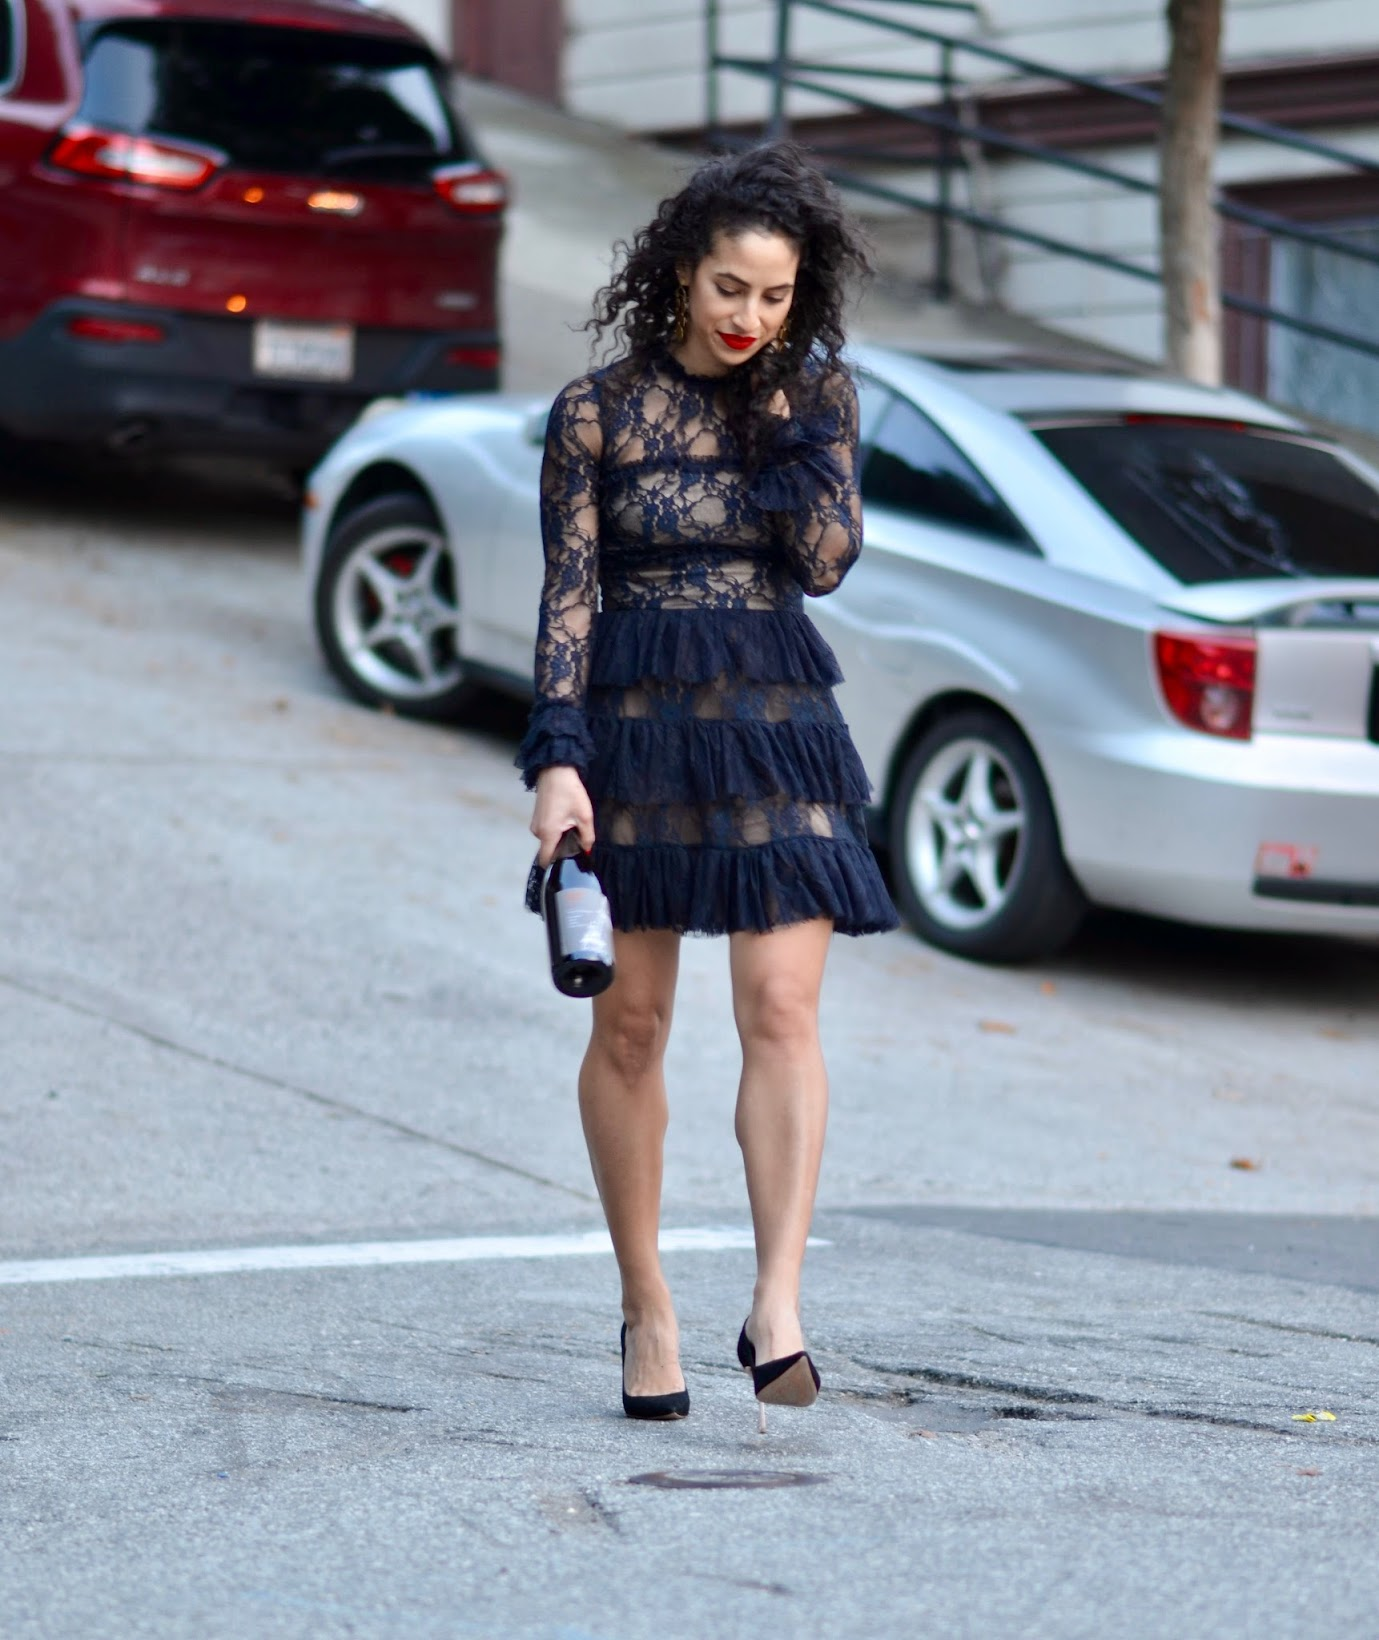 Bailey 44 lace dress, how to wear head-to-toe black, chic all black style, curly hair, how to style curly hair, best curly hair haircut, Rent the Runway unlimited, Sophia Webster pumps